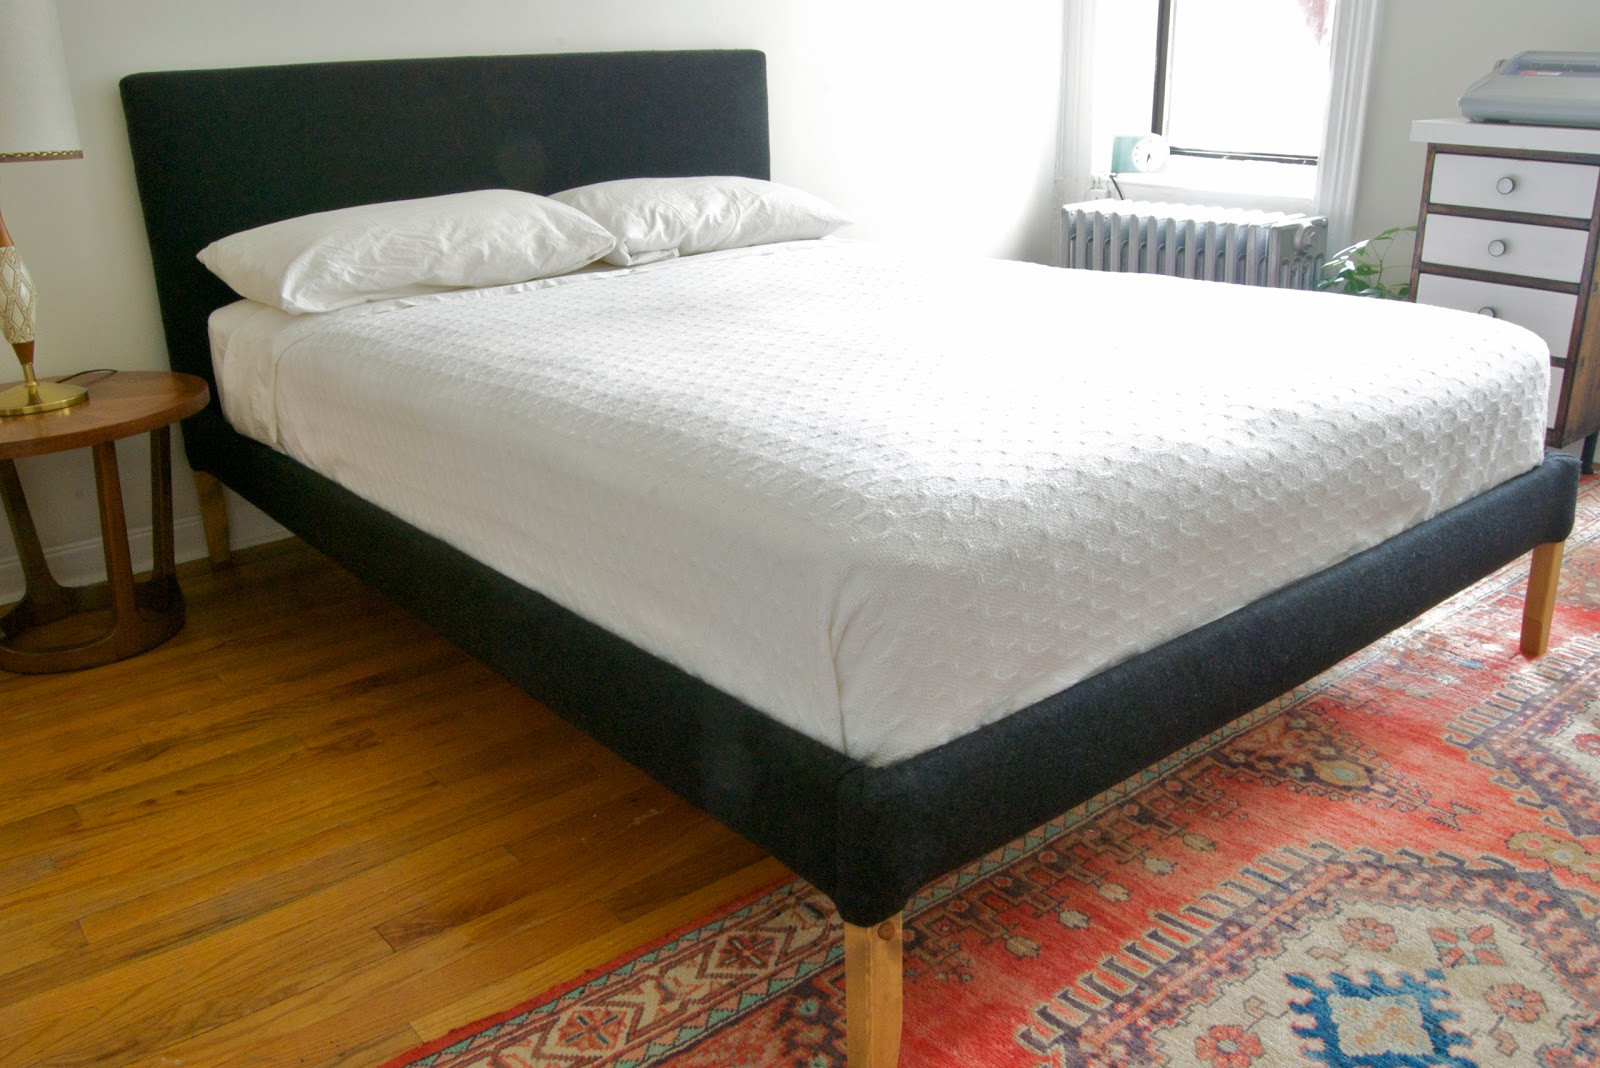 Best ideas about Bed Frame DIY . Save or Pin Stretching For Style DIY Upholstered Bedframe Now.